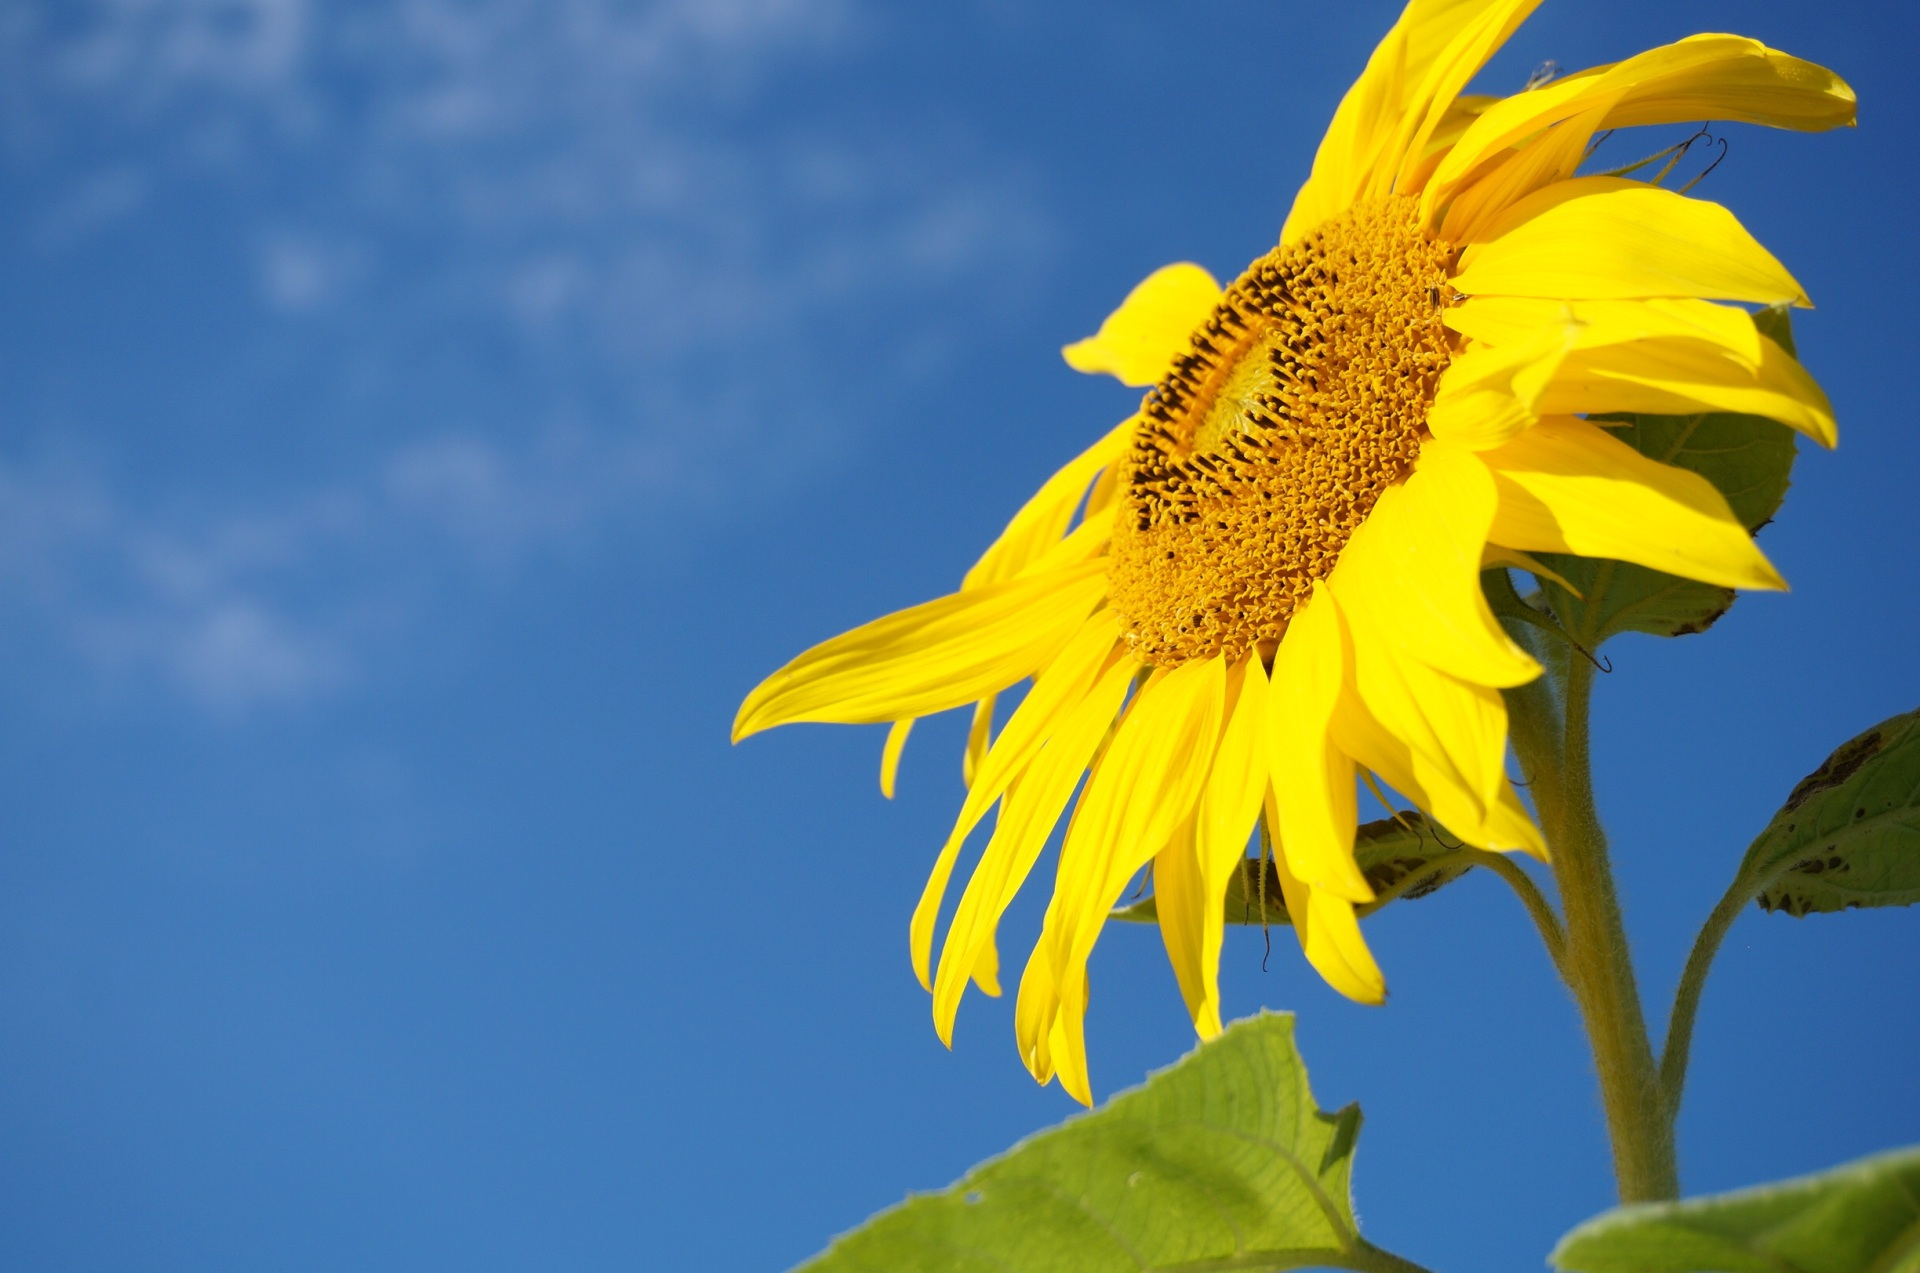 Brighter skin dull skin sunflower